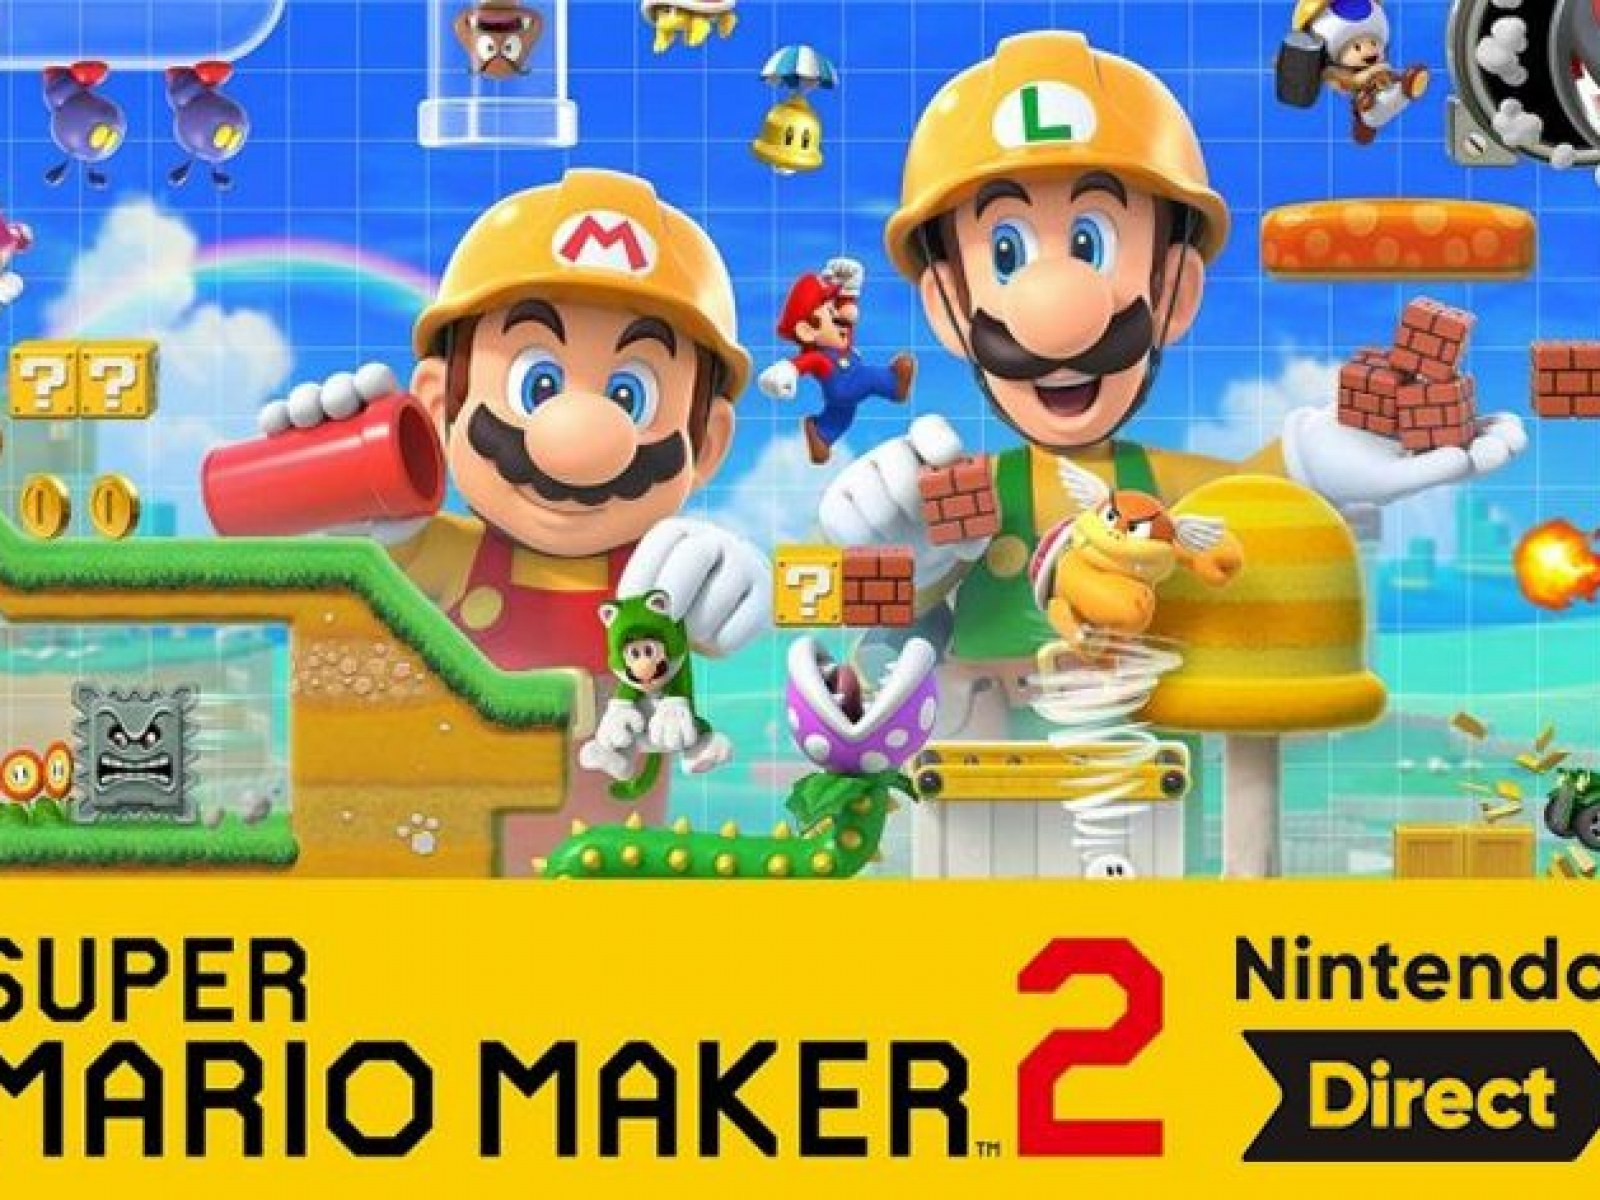 Super Mario Maker 2 Nintendo Direct Start Time And How To Watch